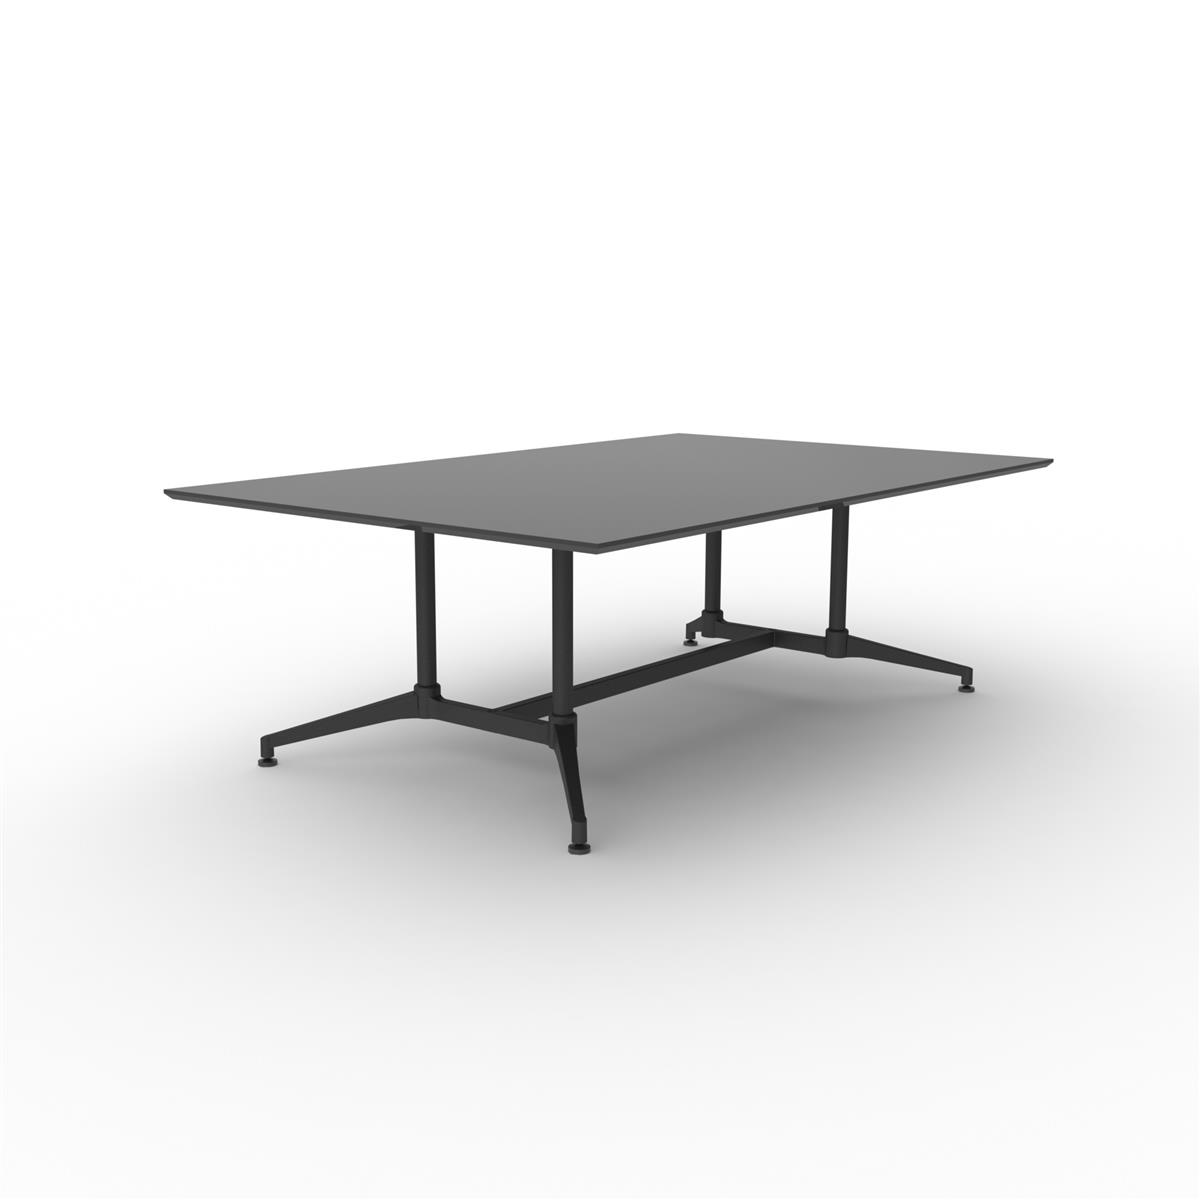 X1 Seamless Table 220 x 140 - sort linoleum & sort